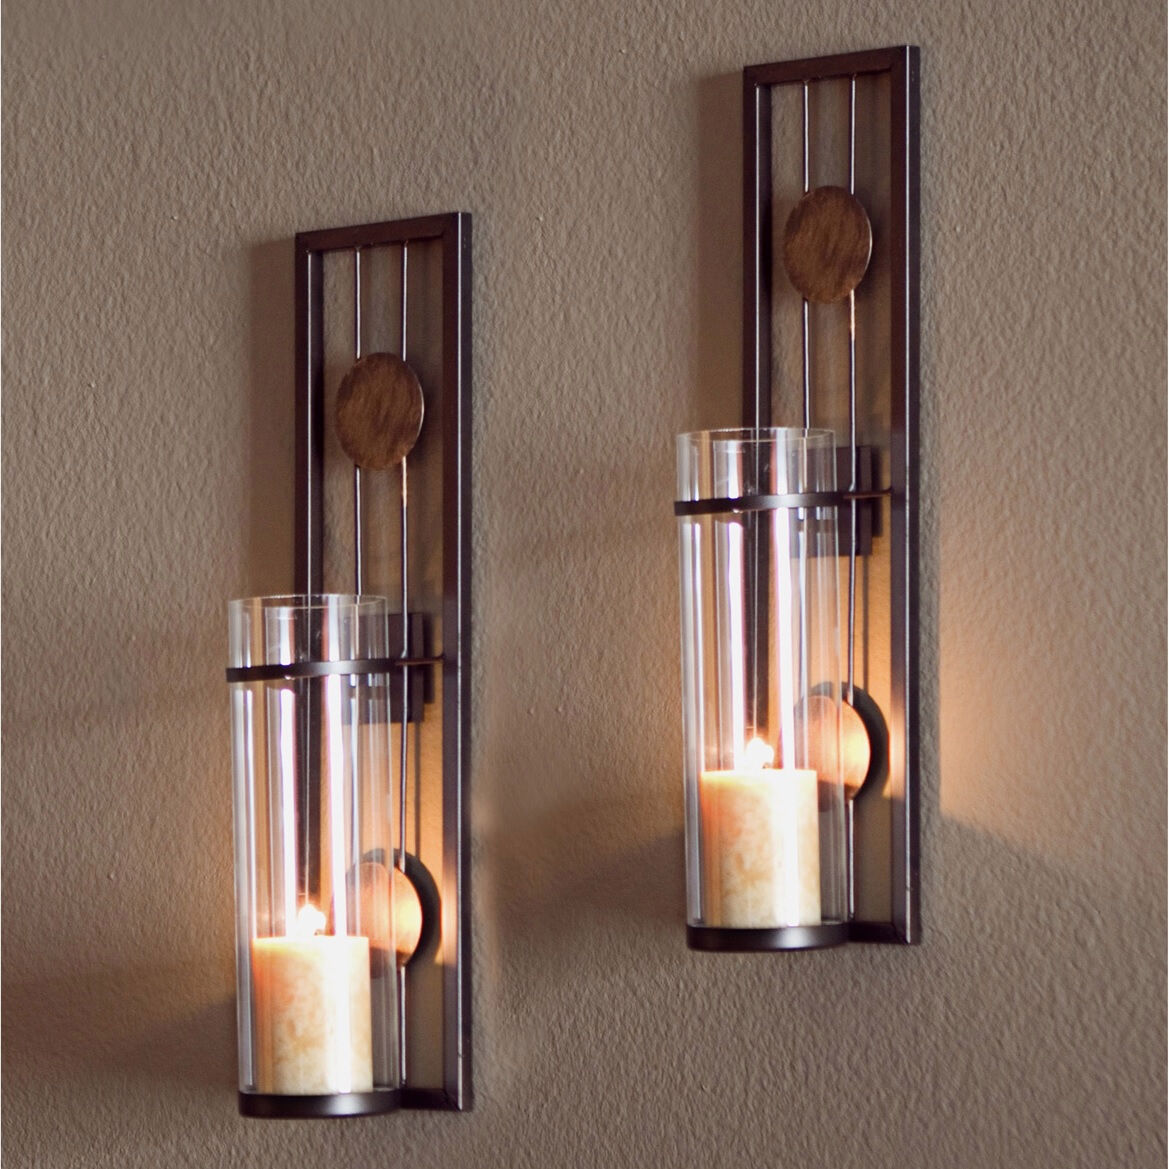 Bedroom Dividers Ideas Glass Metal Wall Mounted Sconces 2 Pillar Candle Holders